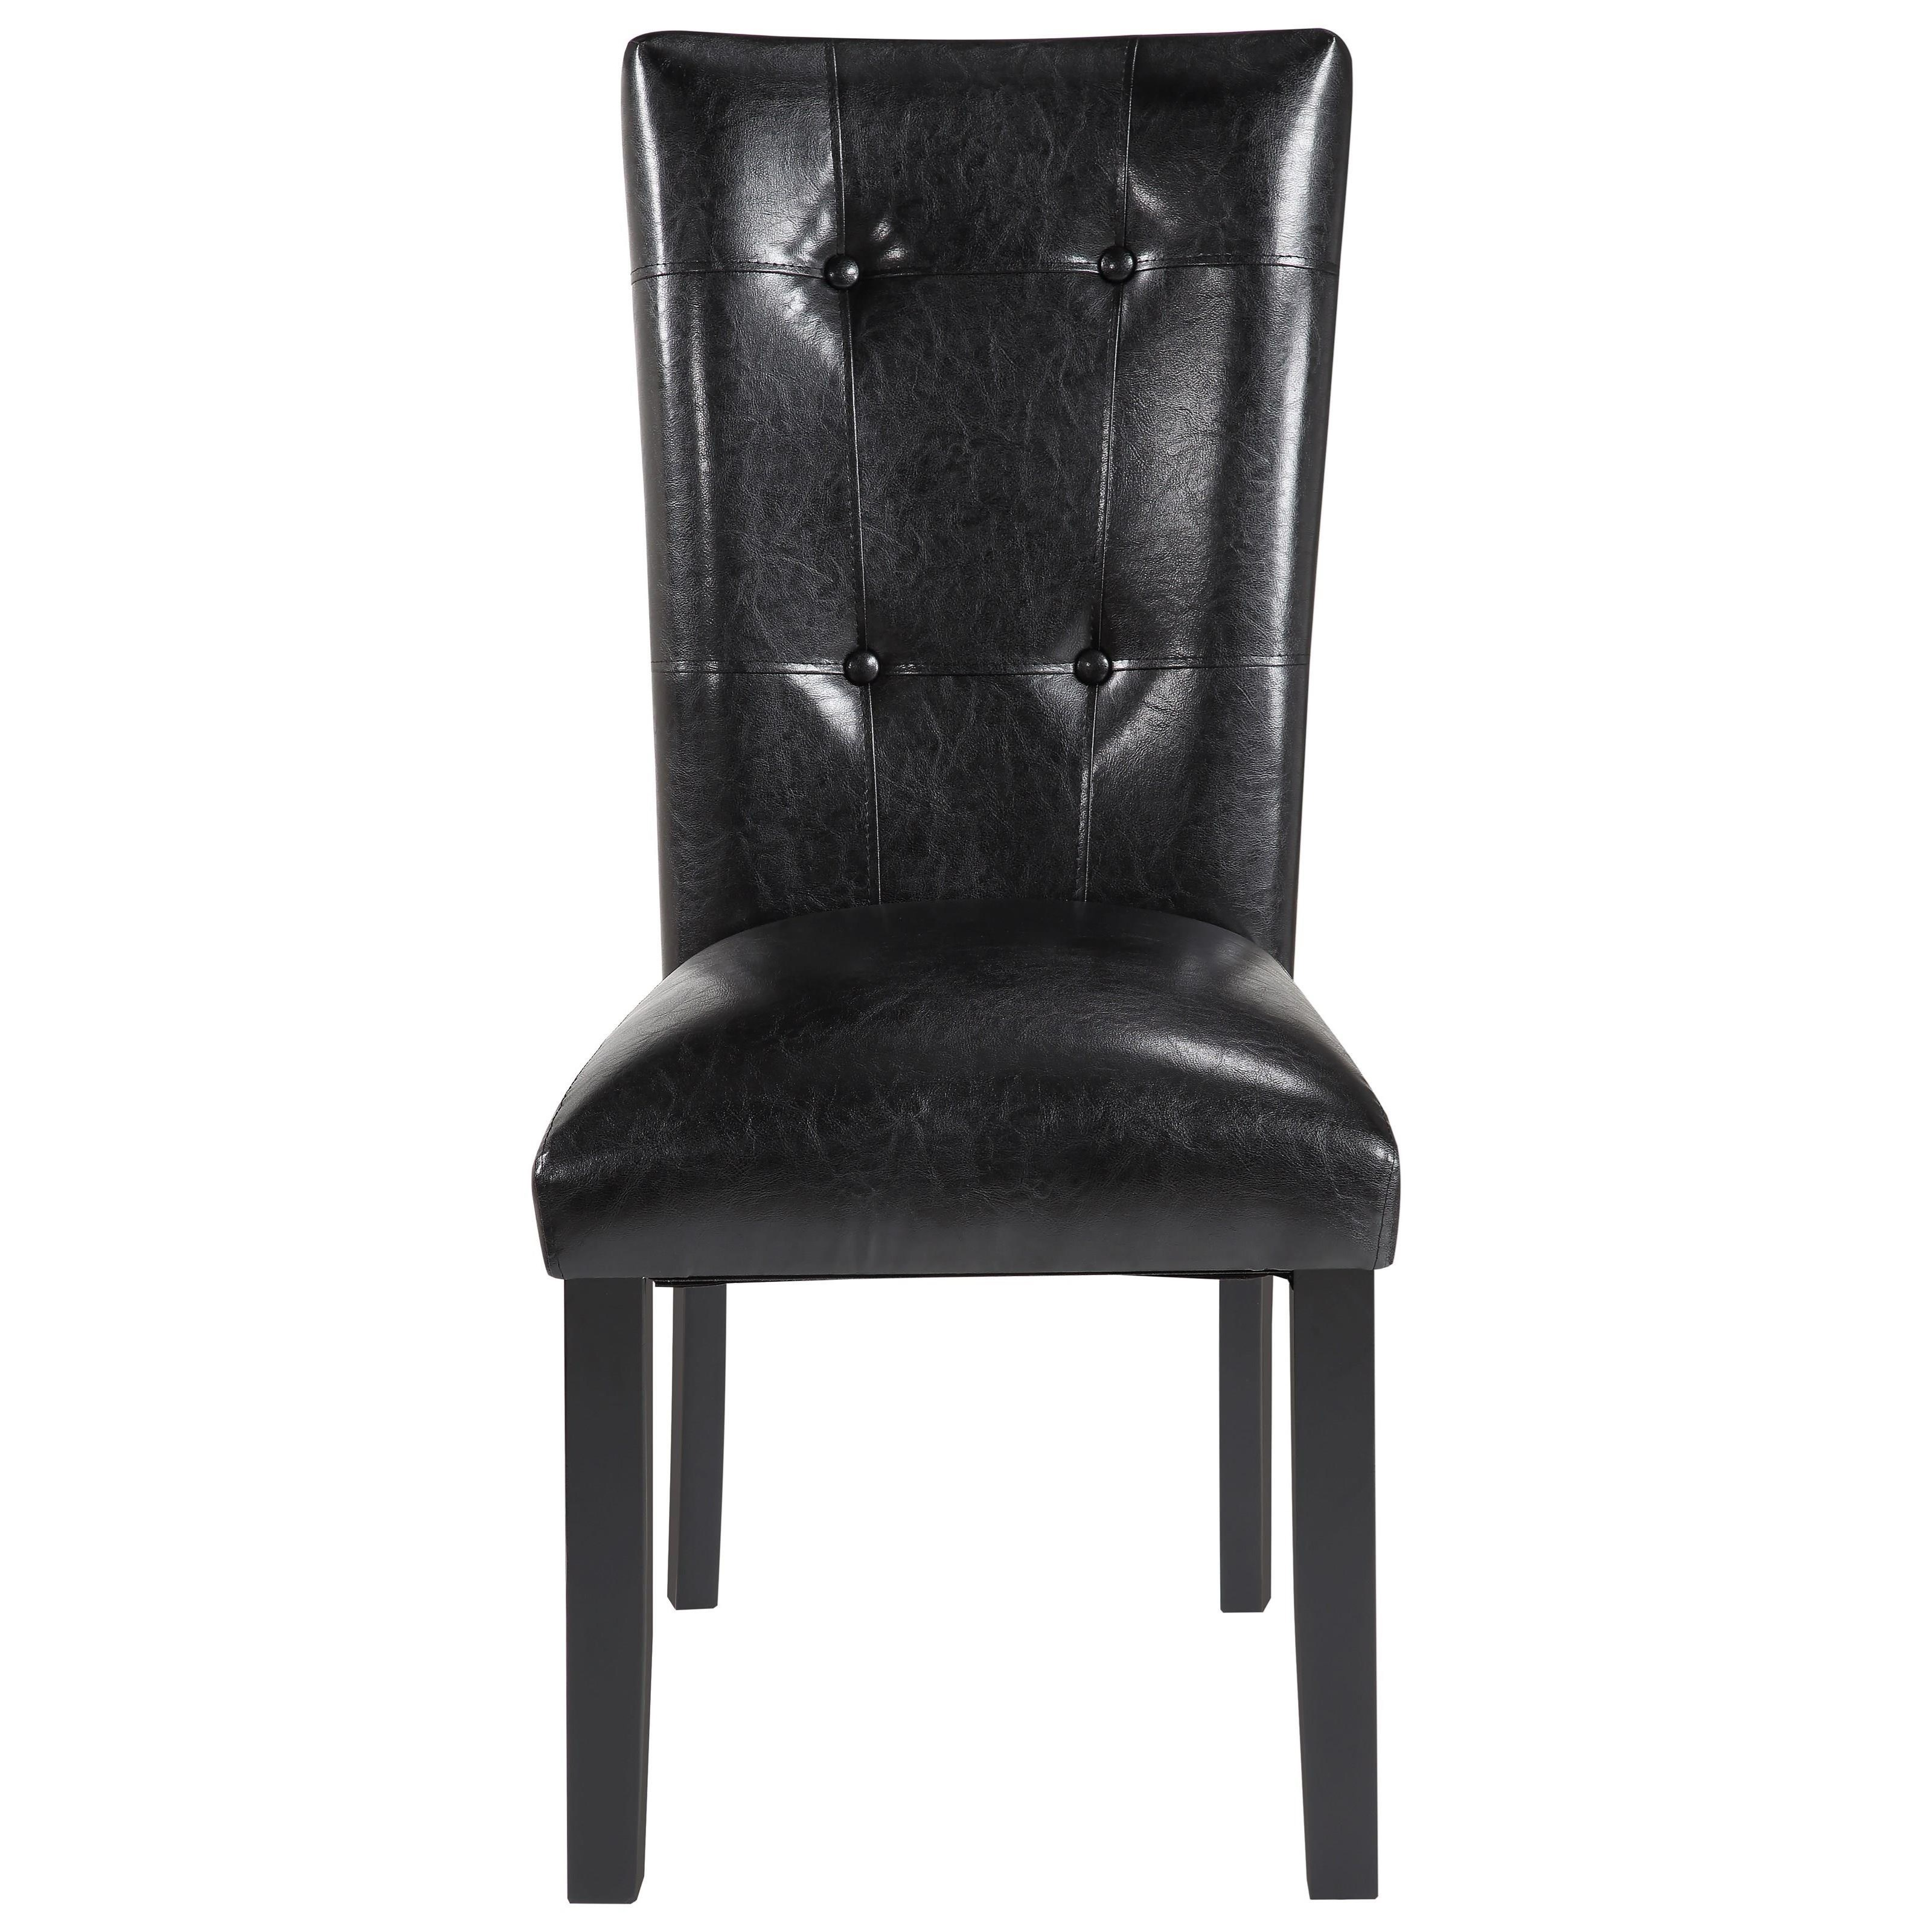 Sterling Dining Chair by Steve Silver at Northeast Factory Direct